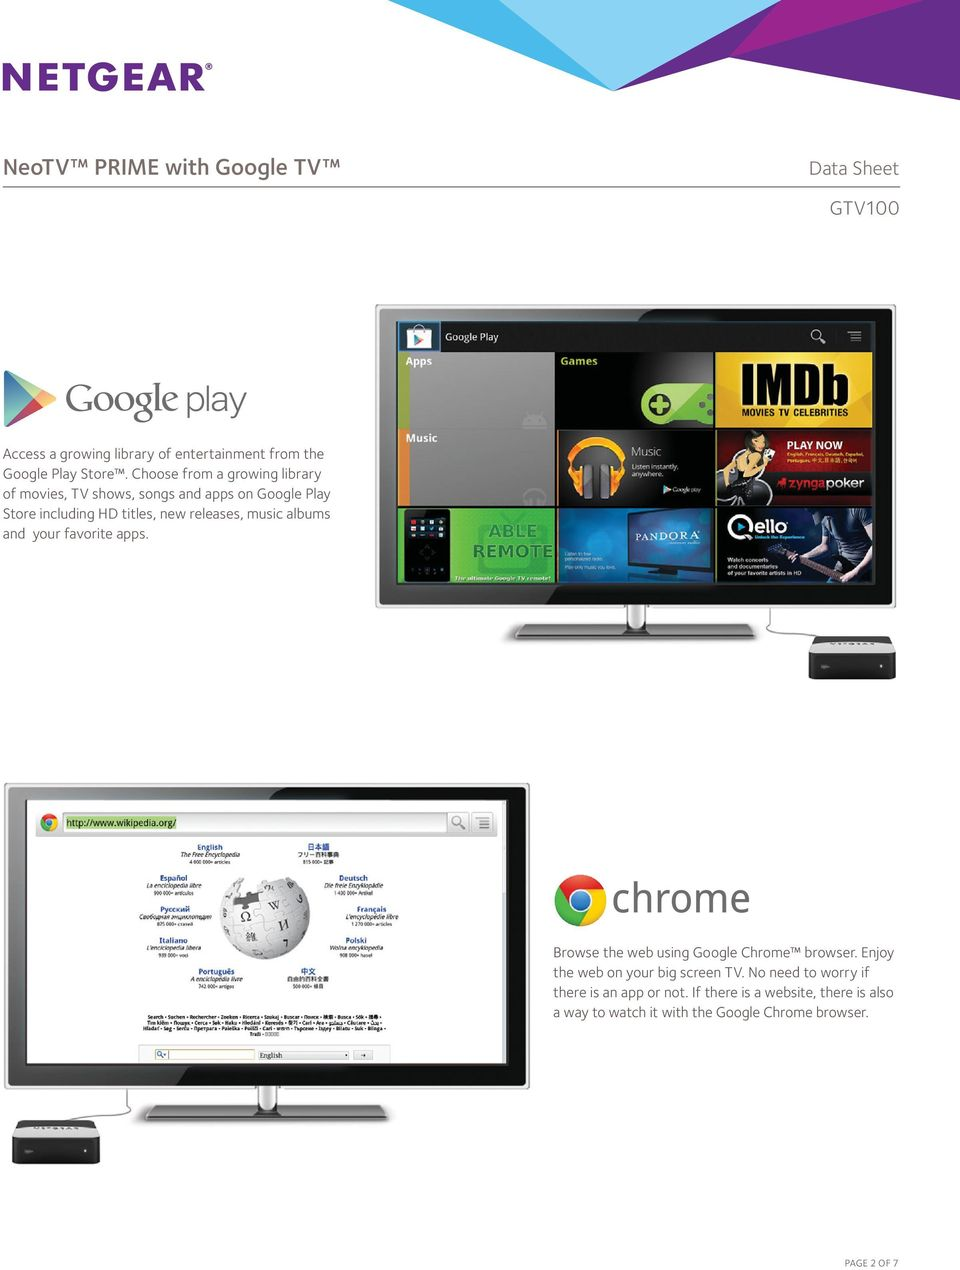 releases, music albums and your favorite apps. Browse the web using Google Chrome browser.